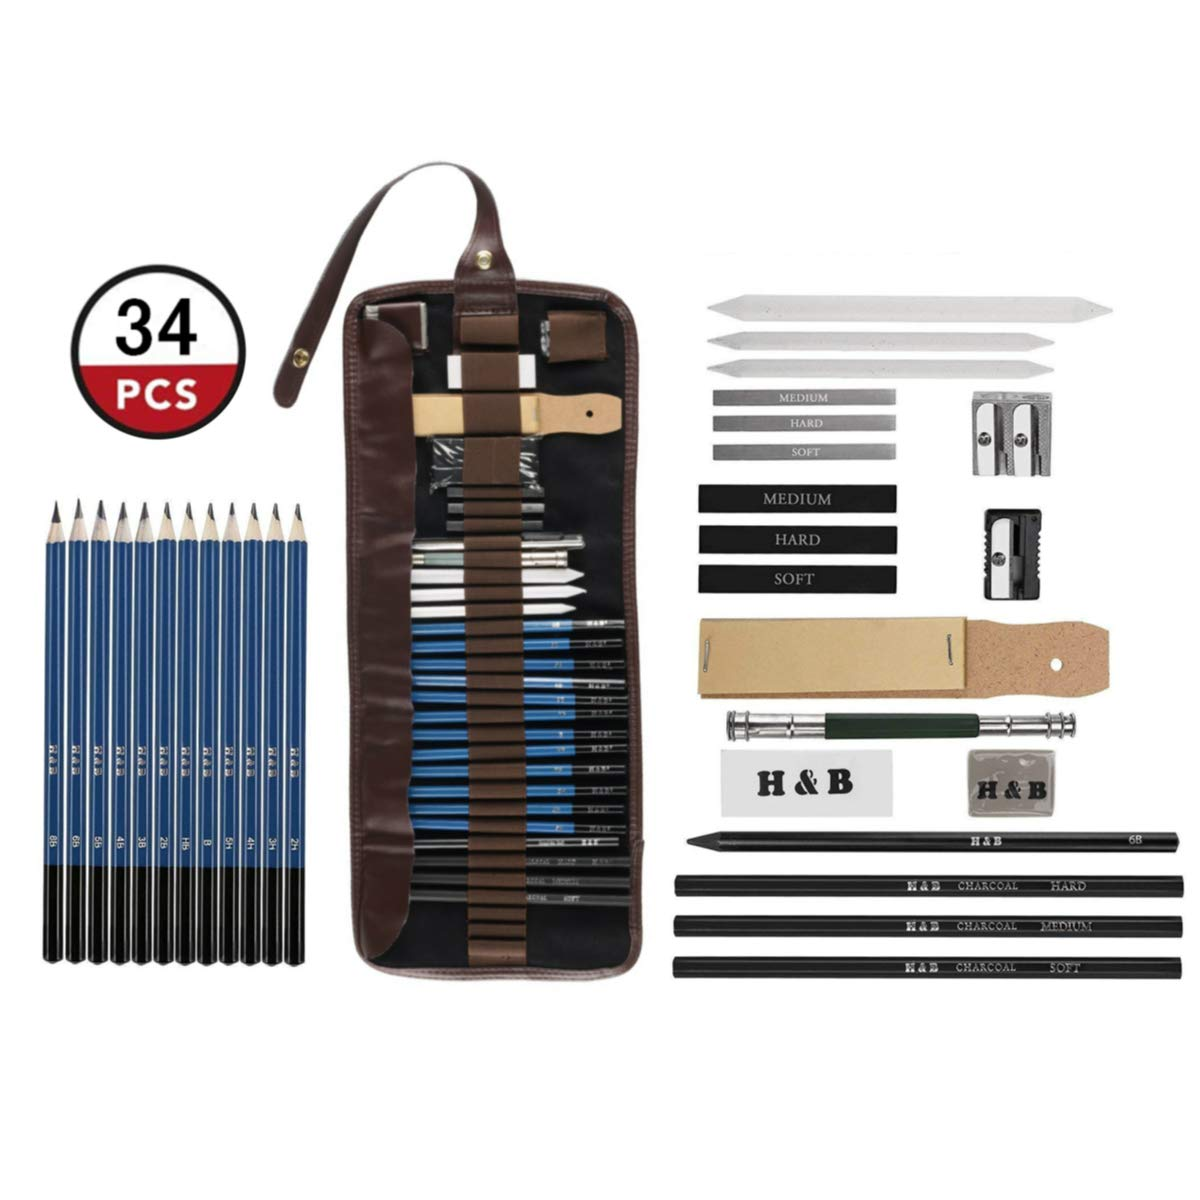 Amazon com lugoo 34 pcs sketch drawing pencil set professional portable charcoal painting kit with art supplies for artists hobbyists kids adults